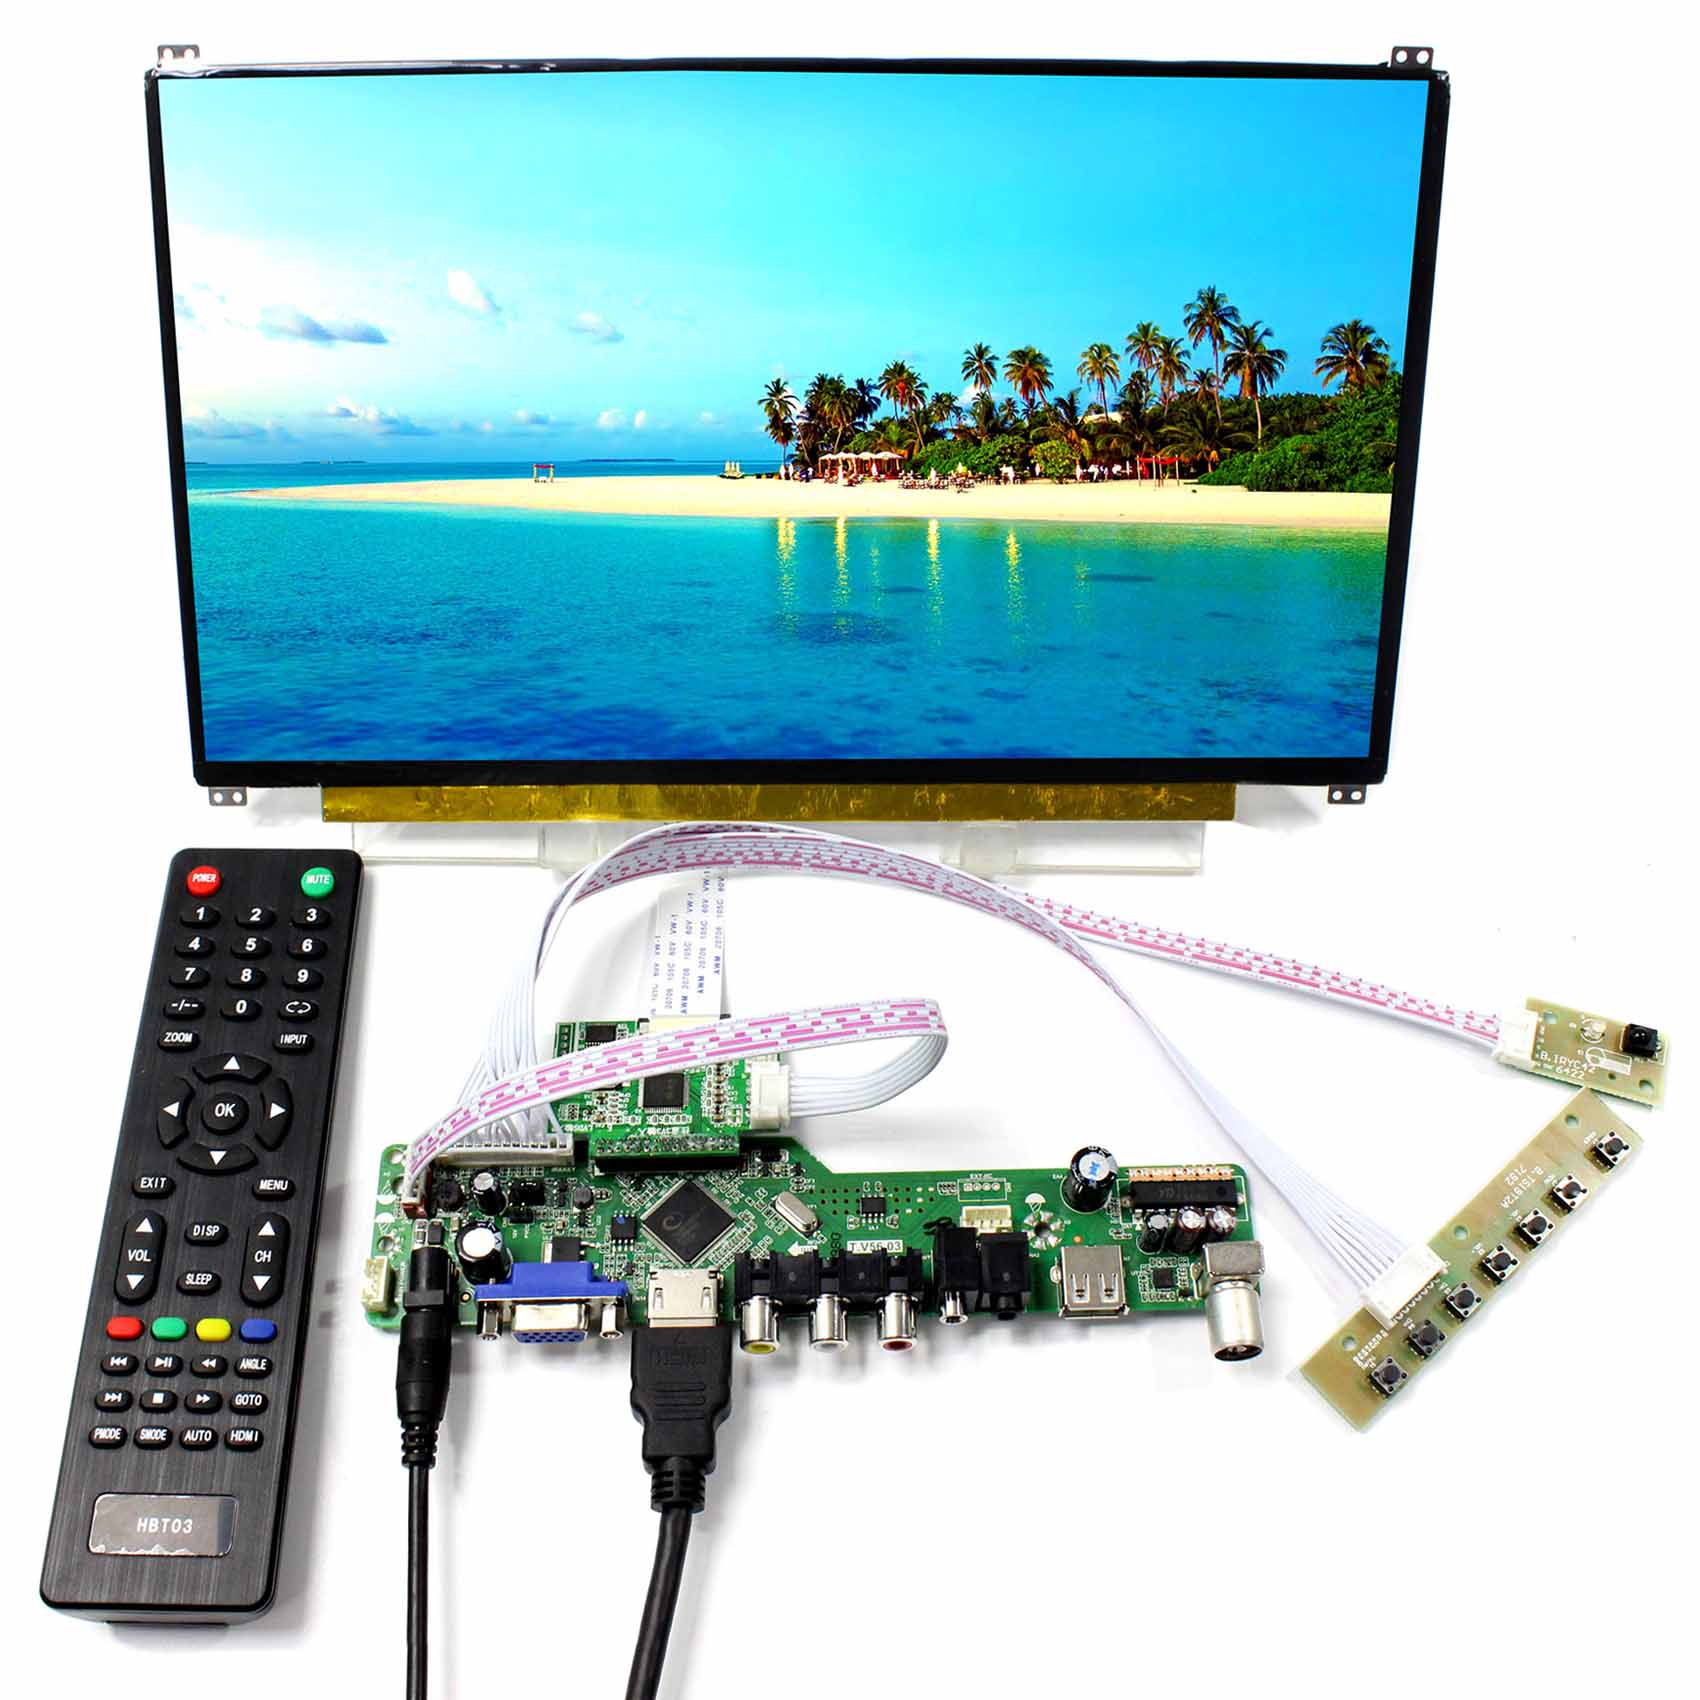 13.3 N133HSE Backlight WLED 1920x1080 Resolution 13.3inch IPS LCD Screen 30pins eDP Connector vga hdmi lcd edp controller board led diy kit for lp116wh6 spa1 lp116wh6 spa2 11 6 inch edp 30 pins 1lane 1366x768 wled ips tft